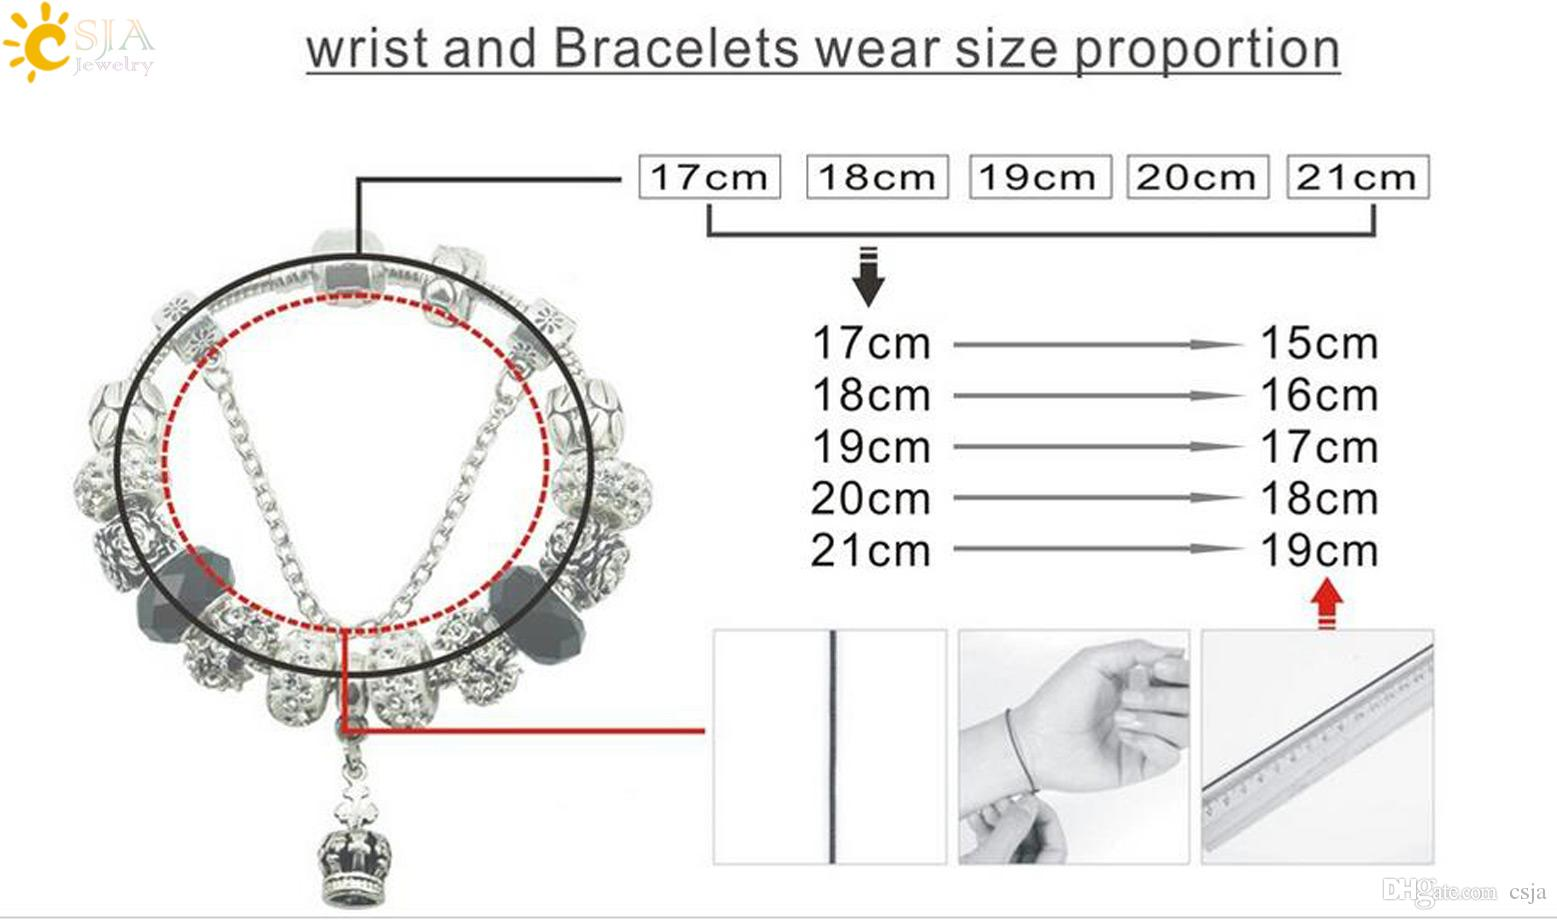 CSJA Flower of Life Pendant Retro Silver Beads Bracelet Women Hand Jewelry Real DIY Handmade Hollow Charms Bracelet Safety Chain Design E201